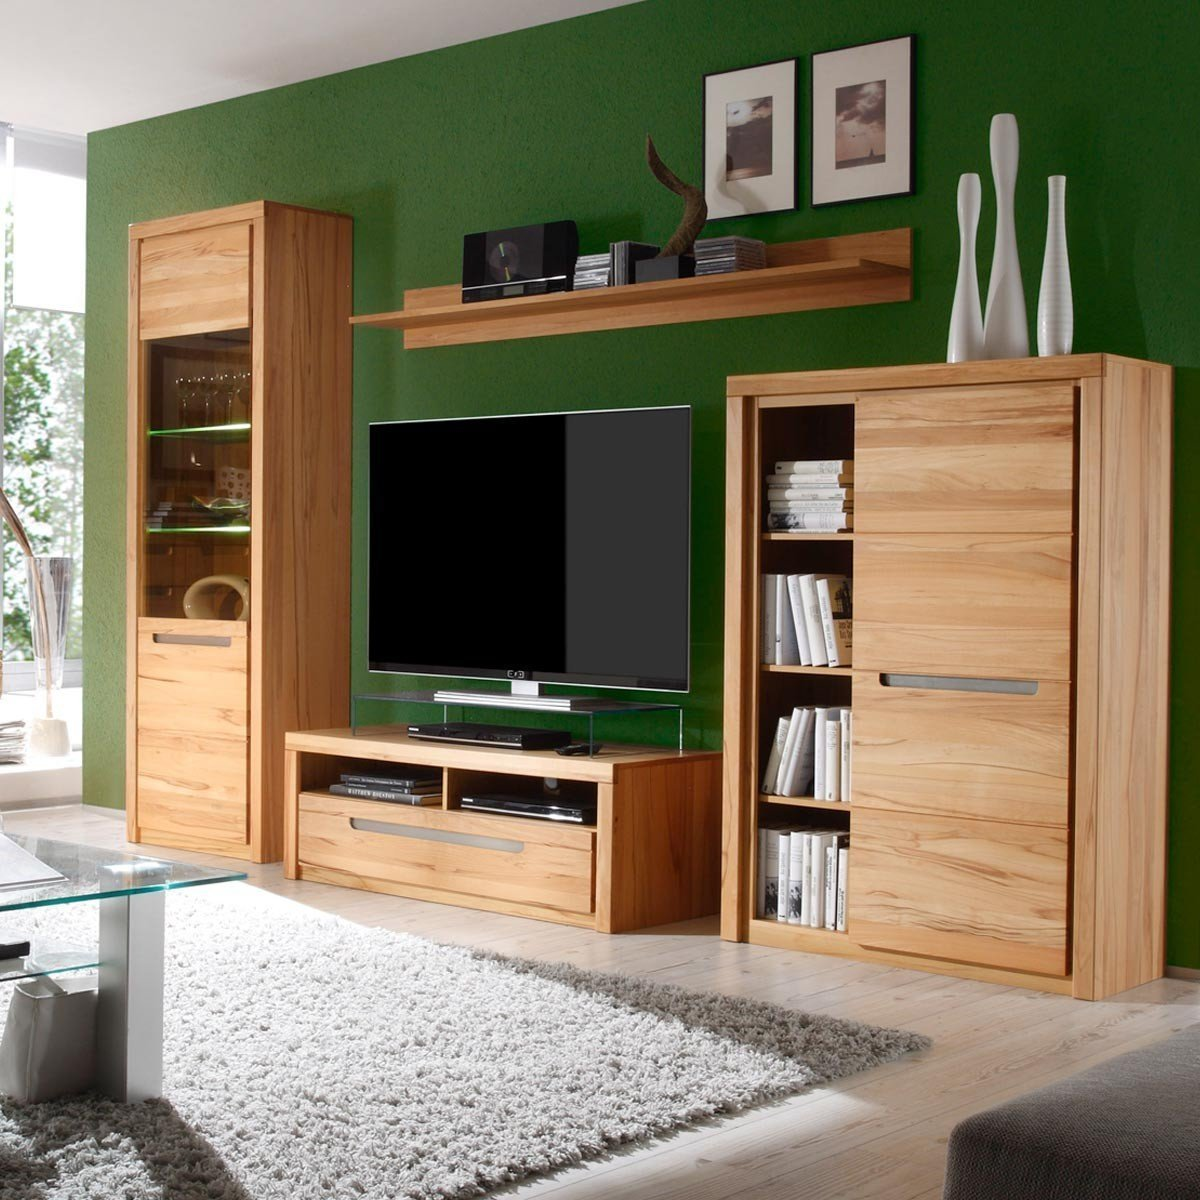 kommode zino kernbuche massiv highboard sideboard wohnzimmer schrank anrichte ebay. Black Bedroom Furniture Sets. Home Design Ideas